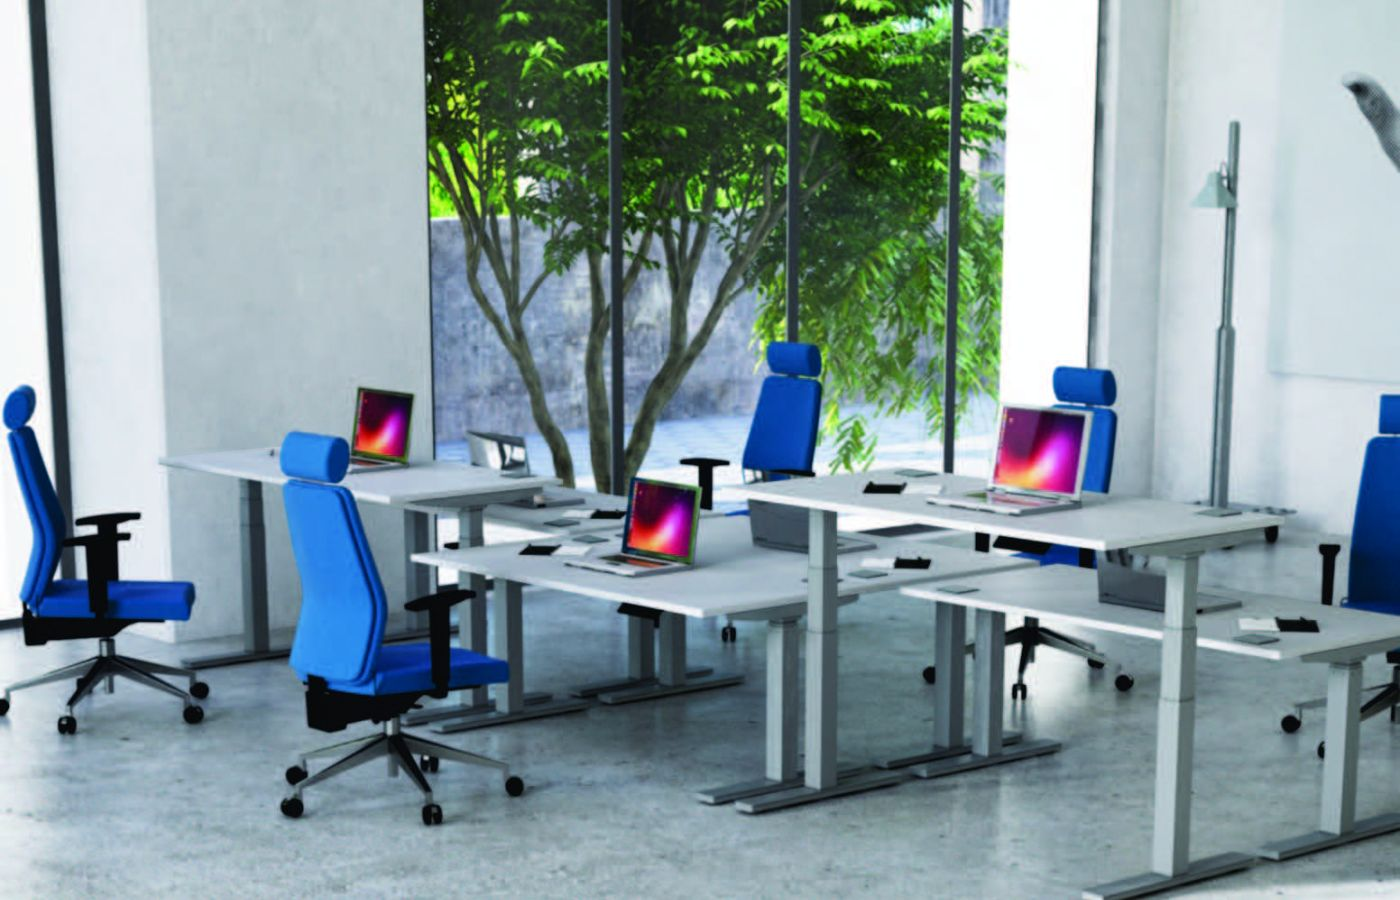 blue chairs for office and breakout